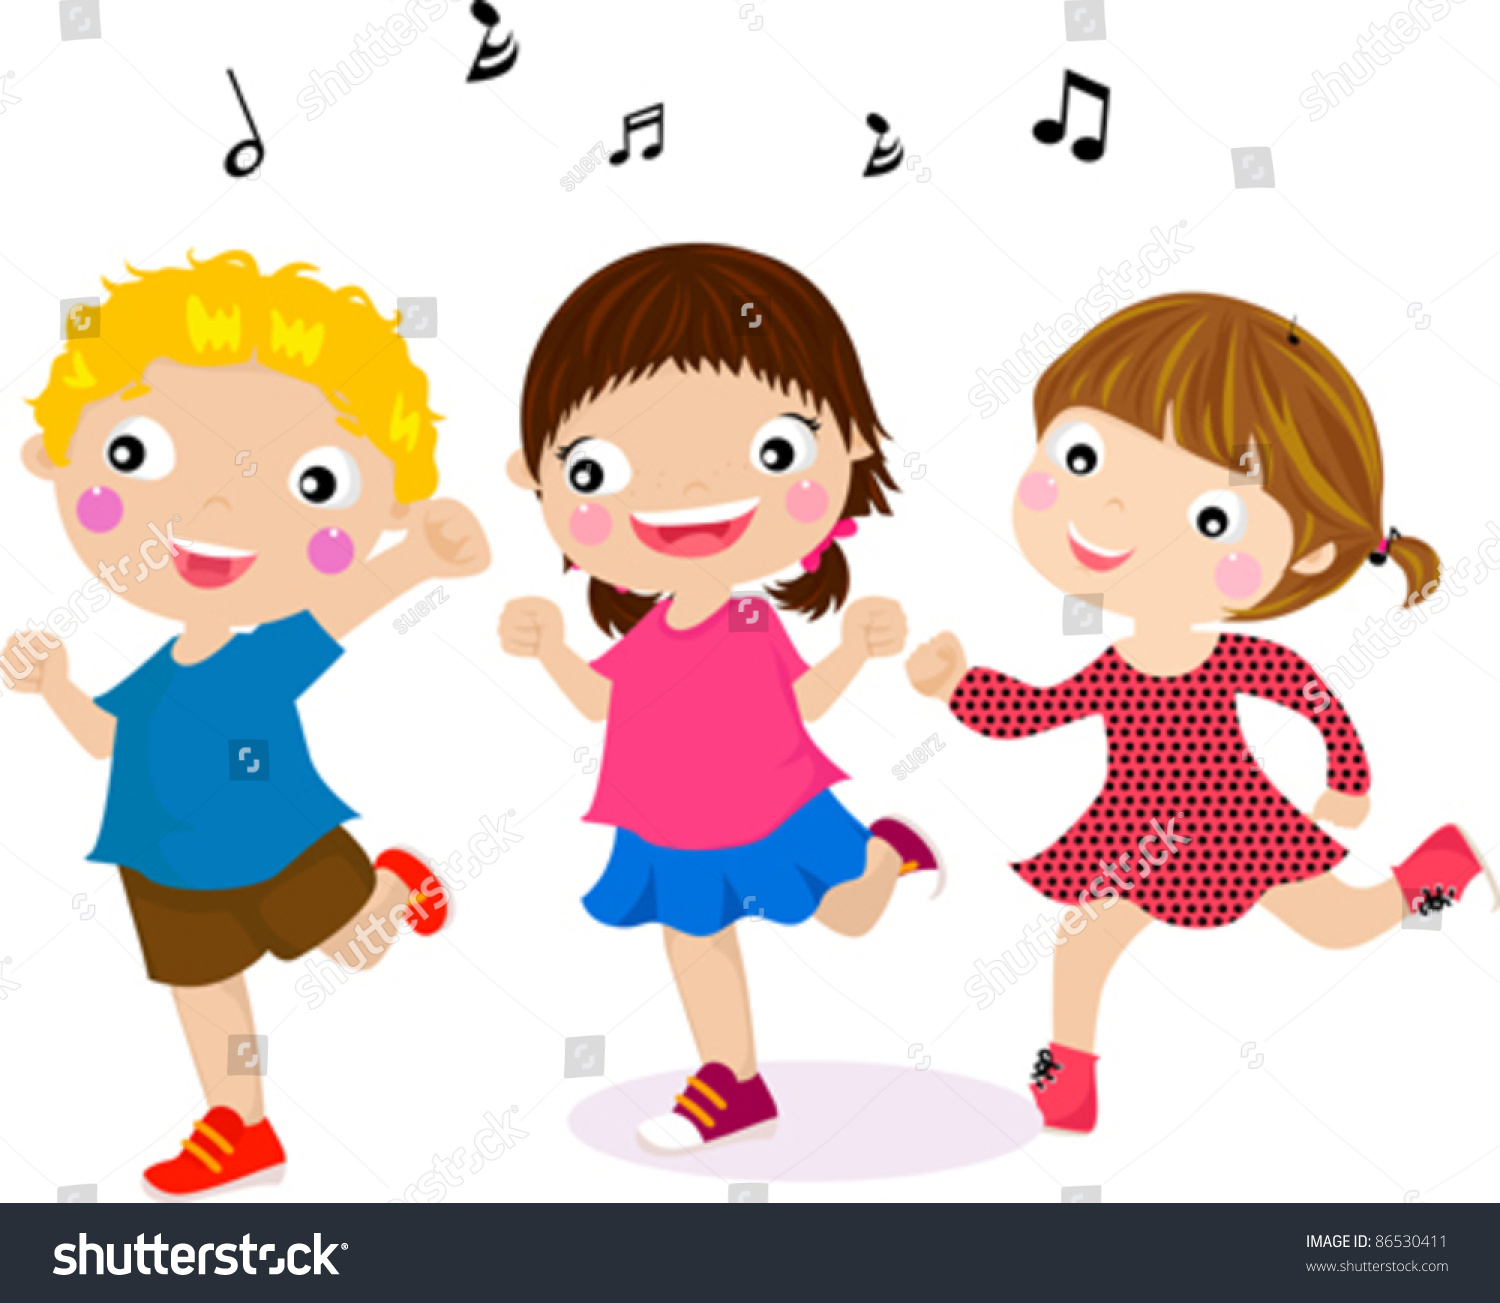 illustration featuring dancing kids stock vector 86530411